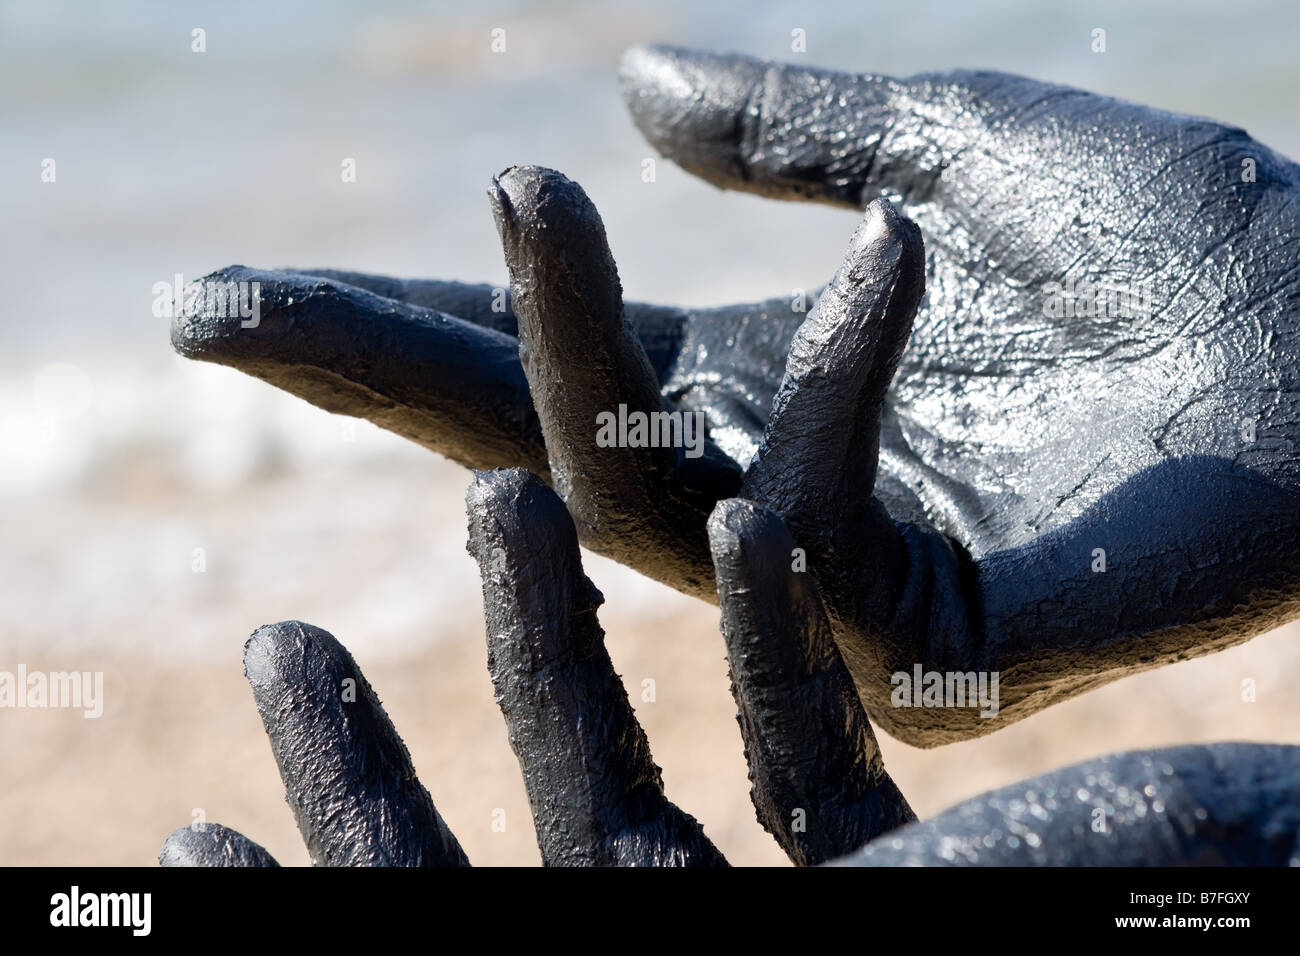 Hand covered with mud from Dead sea Jordan Skincare treatment Use of high depth of field to blur the background - Stock Image